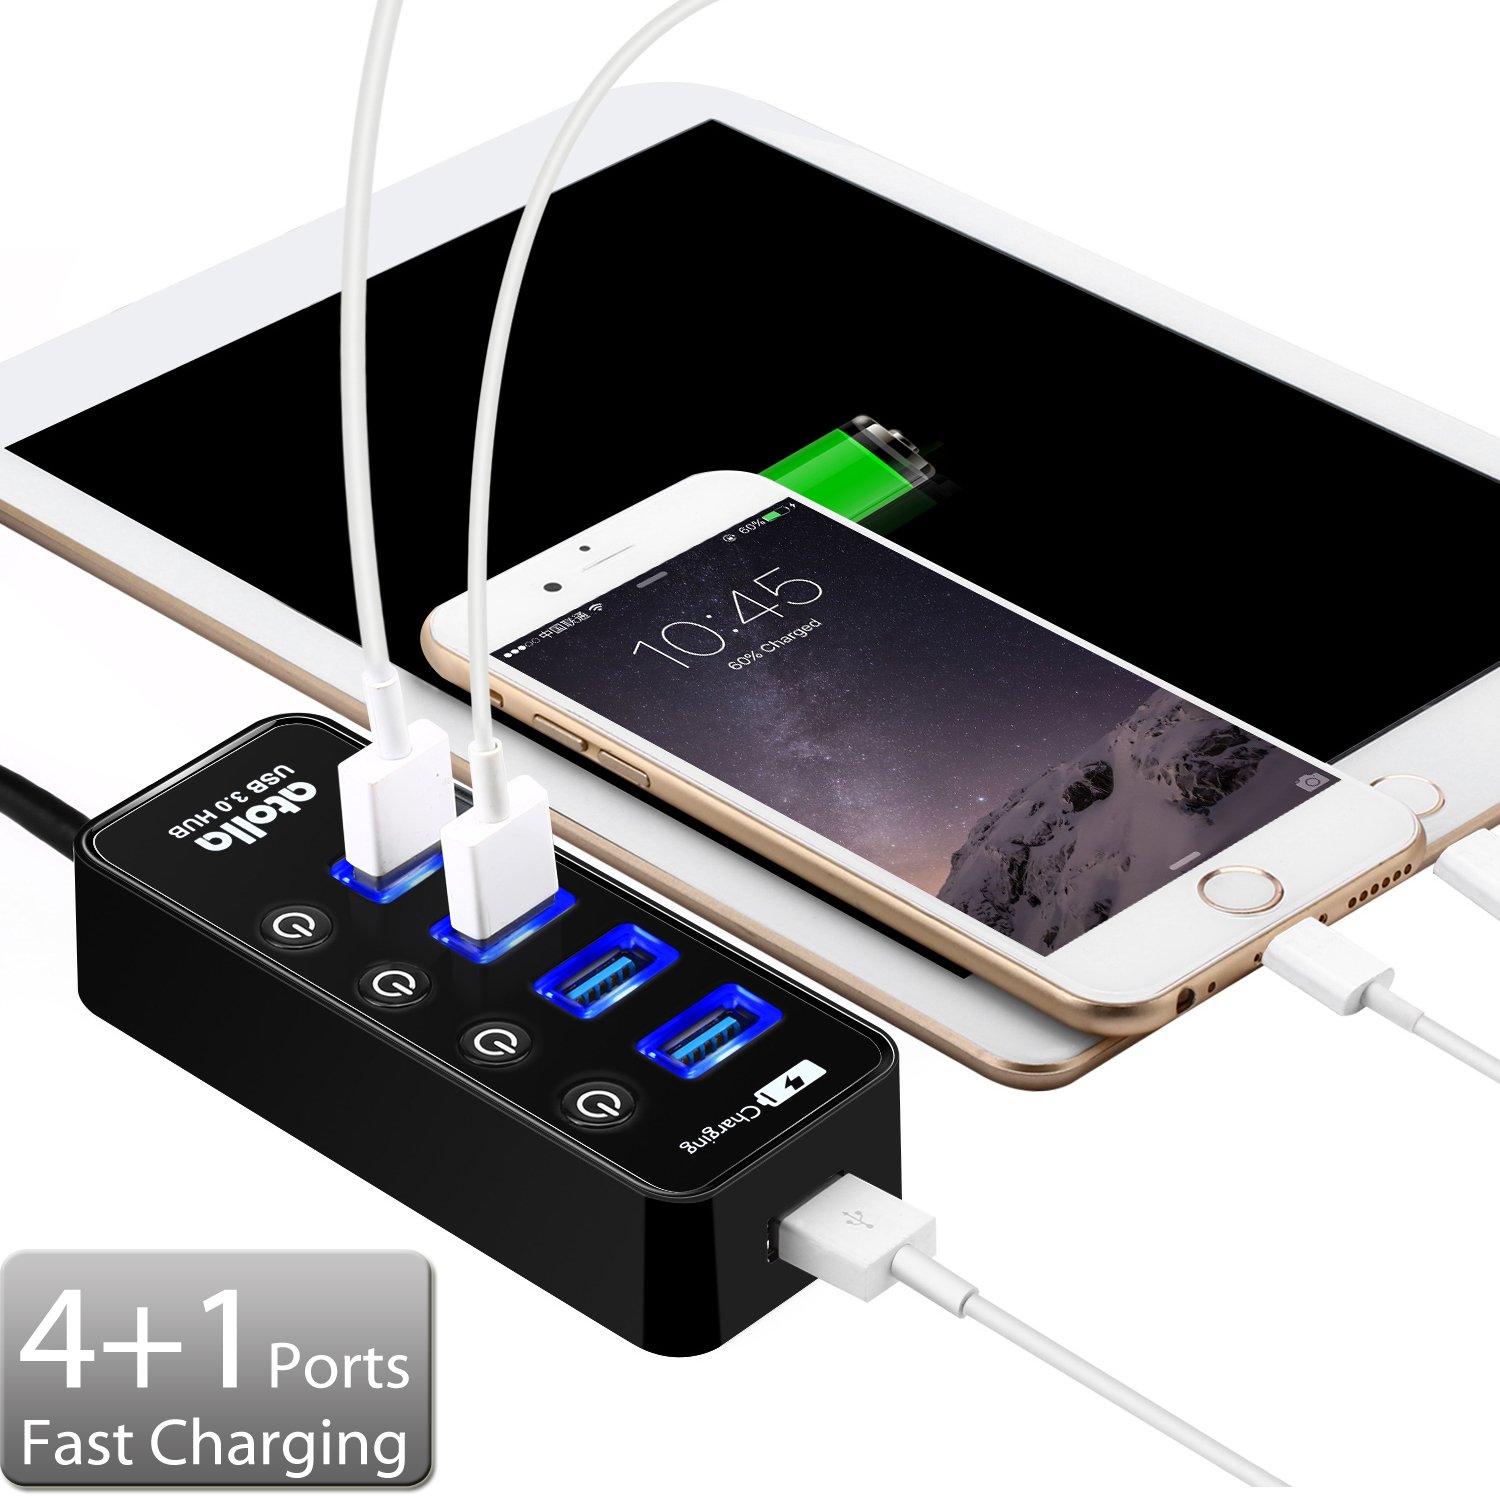 Usb 30 Hub Atolla 4 Ports Super Speed 3 W Auto Power On Splitter With Off Switch 1 Charging Port Cable Length 2 Feet No Ac Adapter